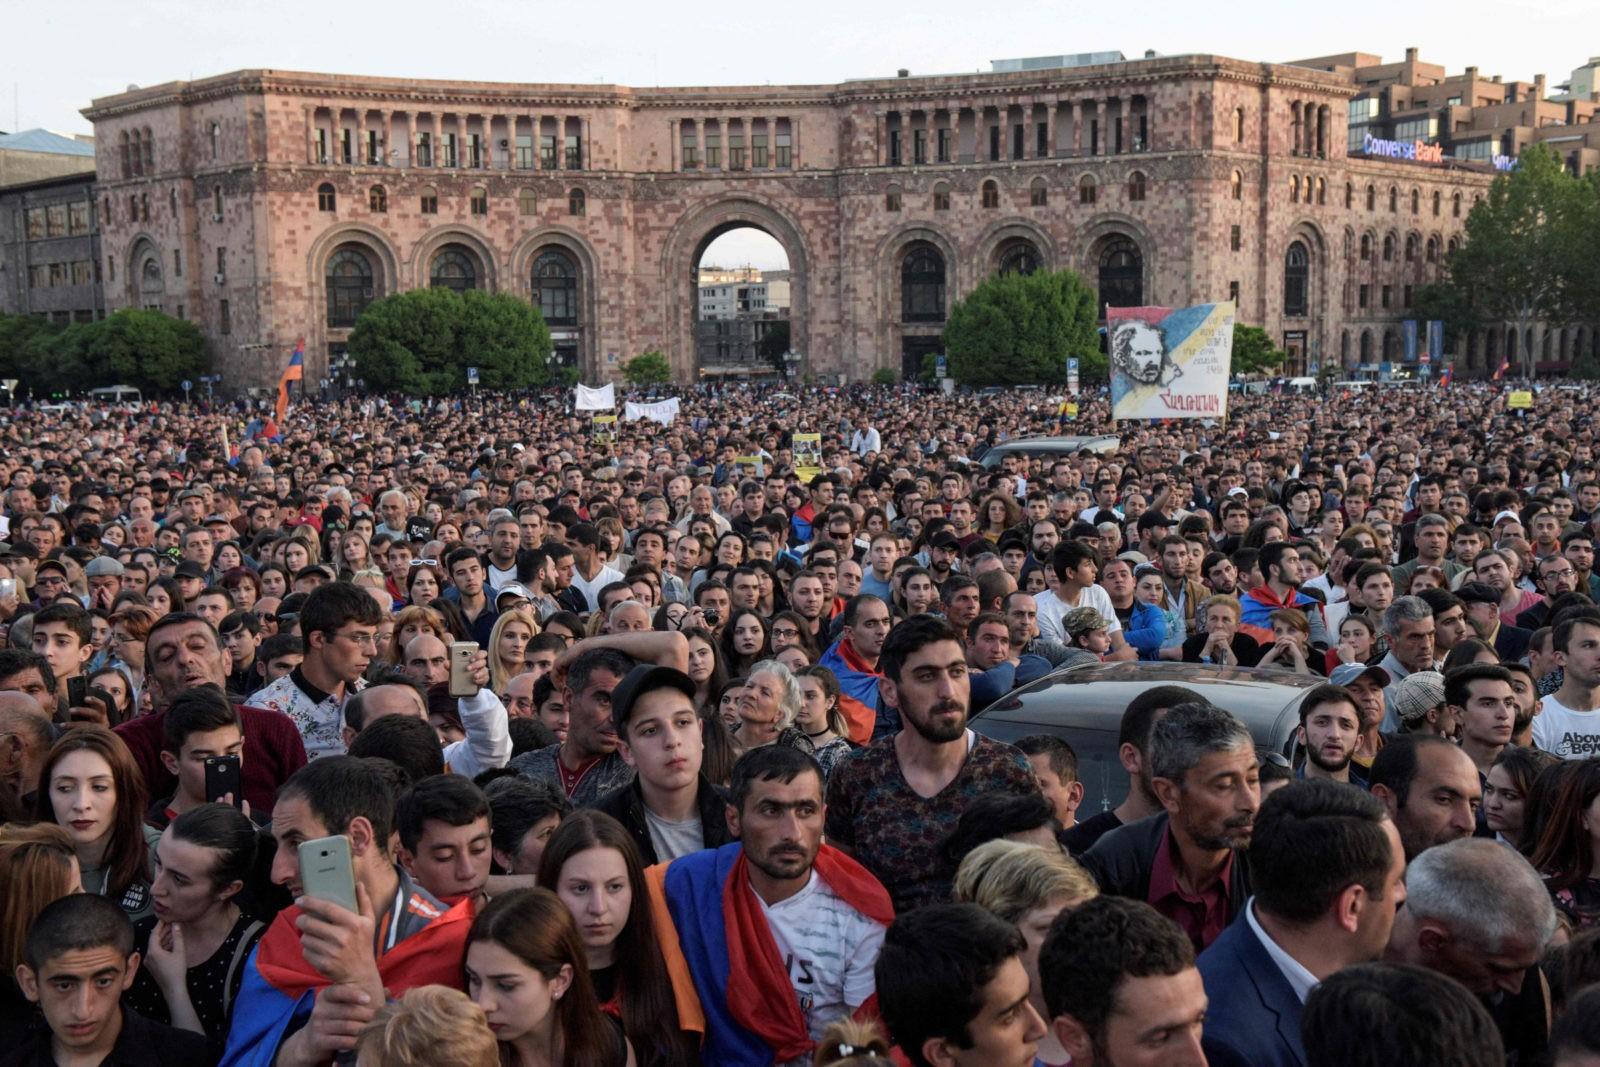 Armenian Prime Minister Serzh Sargsyan surrendered and resigns 23.04.2018